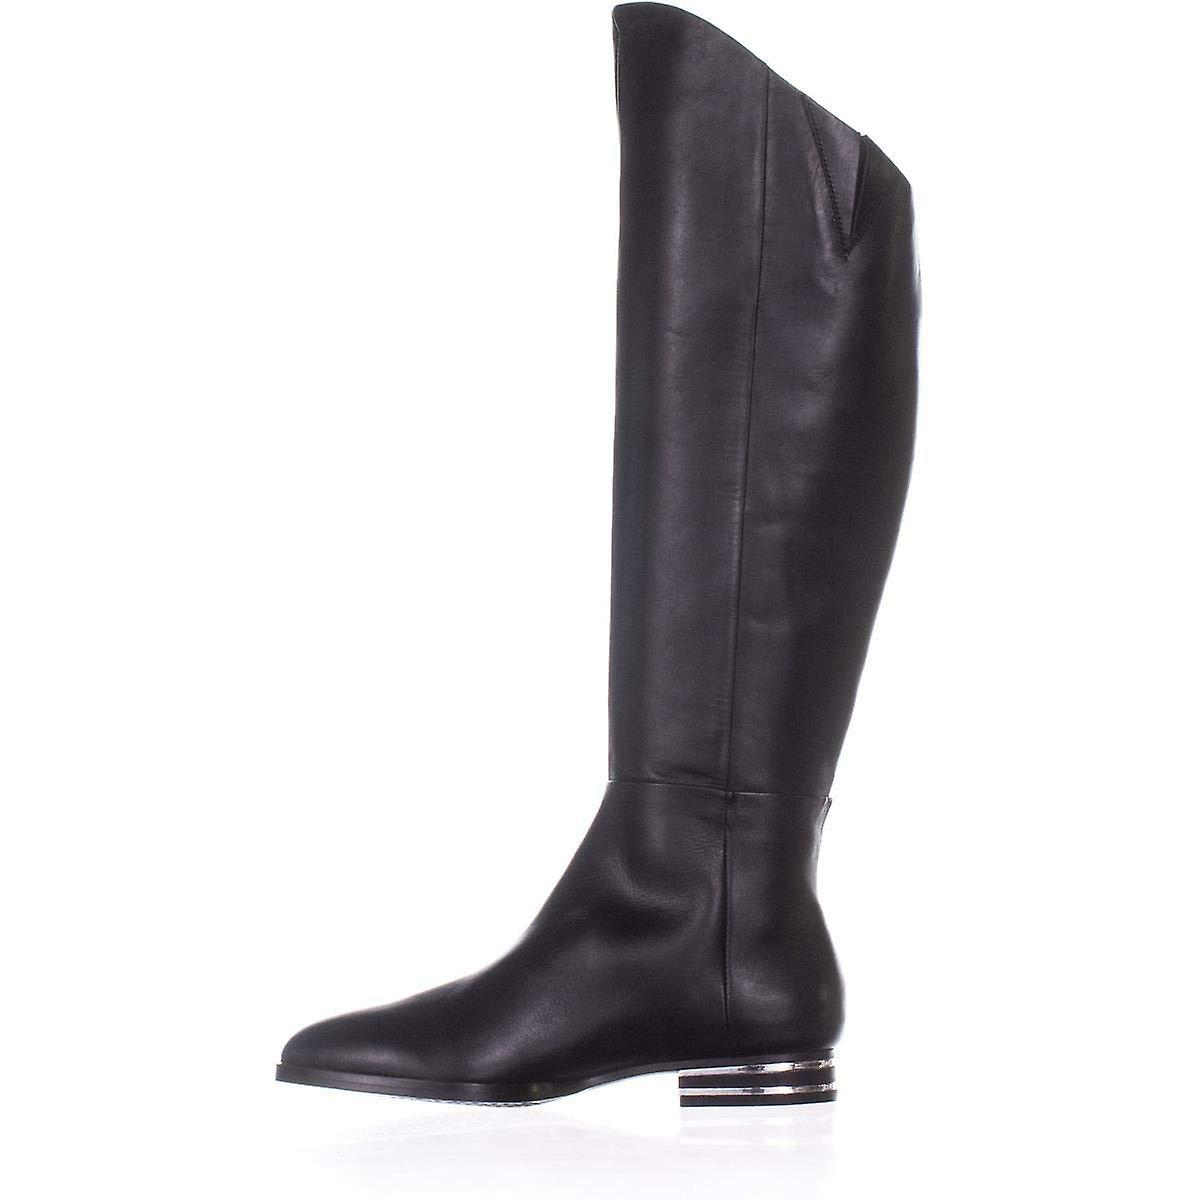 DKNY Lolita Over The Knee Boots, Black Leather